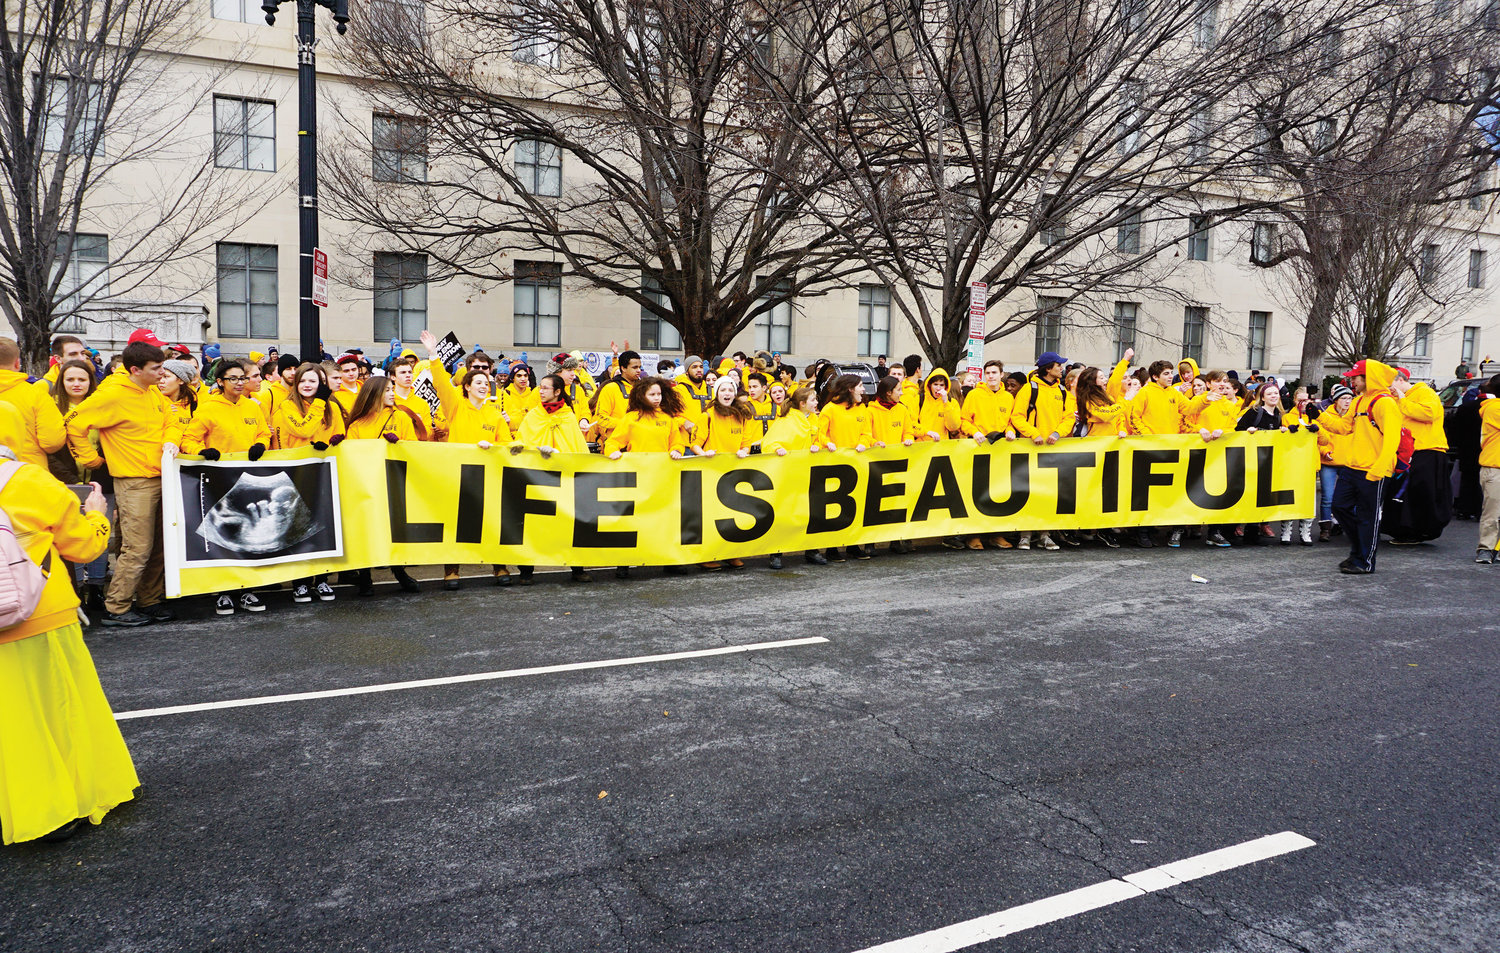 The Archdiocese of New York sent about 1,800 pilgrims to this year's March for Life in Washington D.C. The rally and march occurred Jan. 18. Members of Crusaders for Life, a Chicago-based group, top photo, display a large Life Is Beautiful banner during the event.